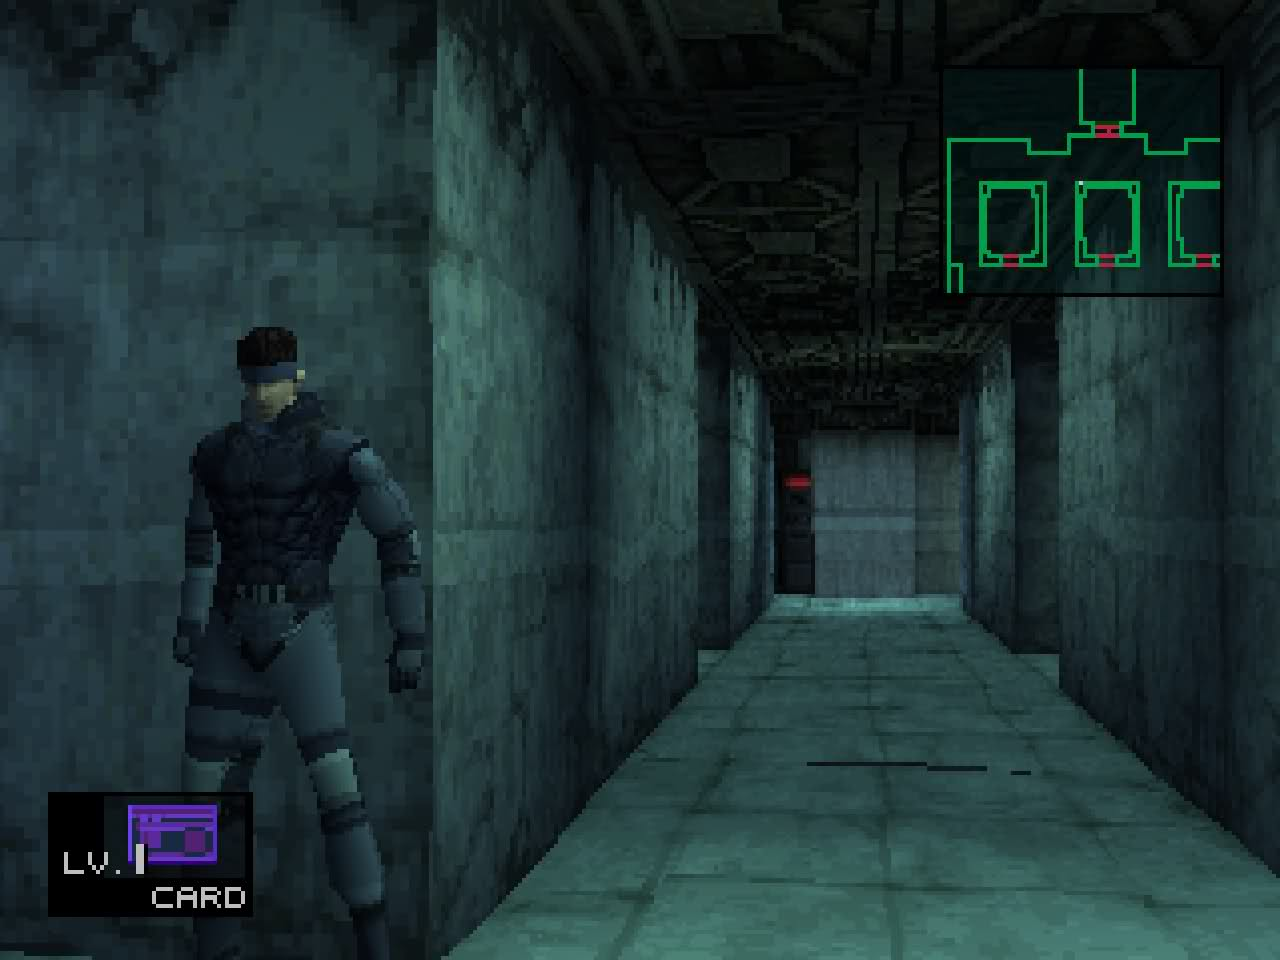 Download game psx 1 crush gear